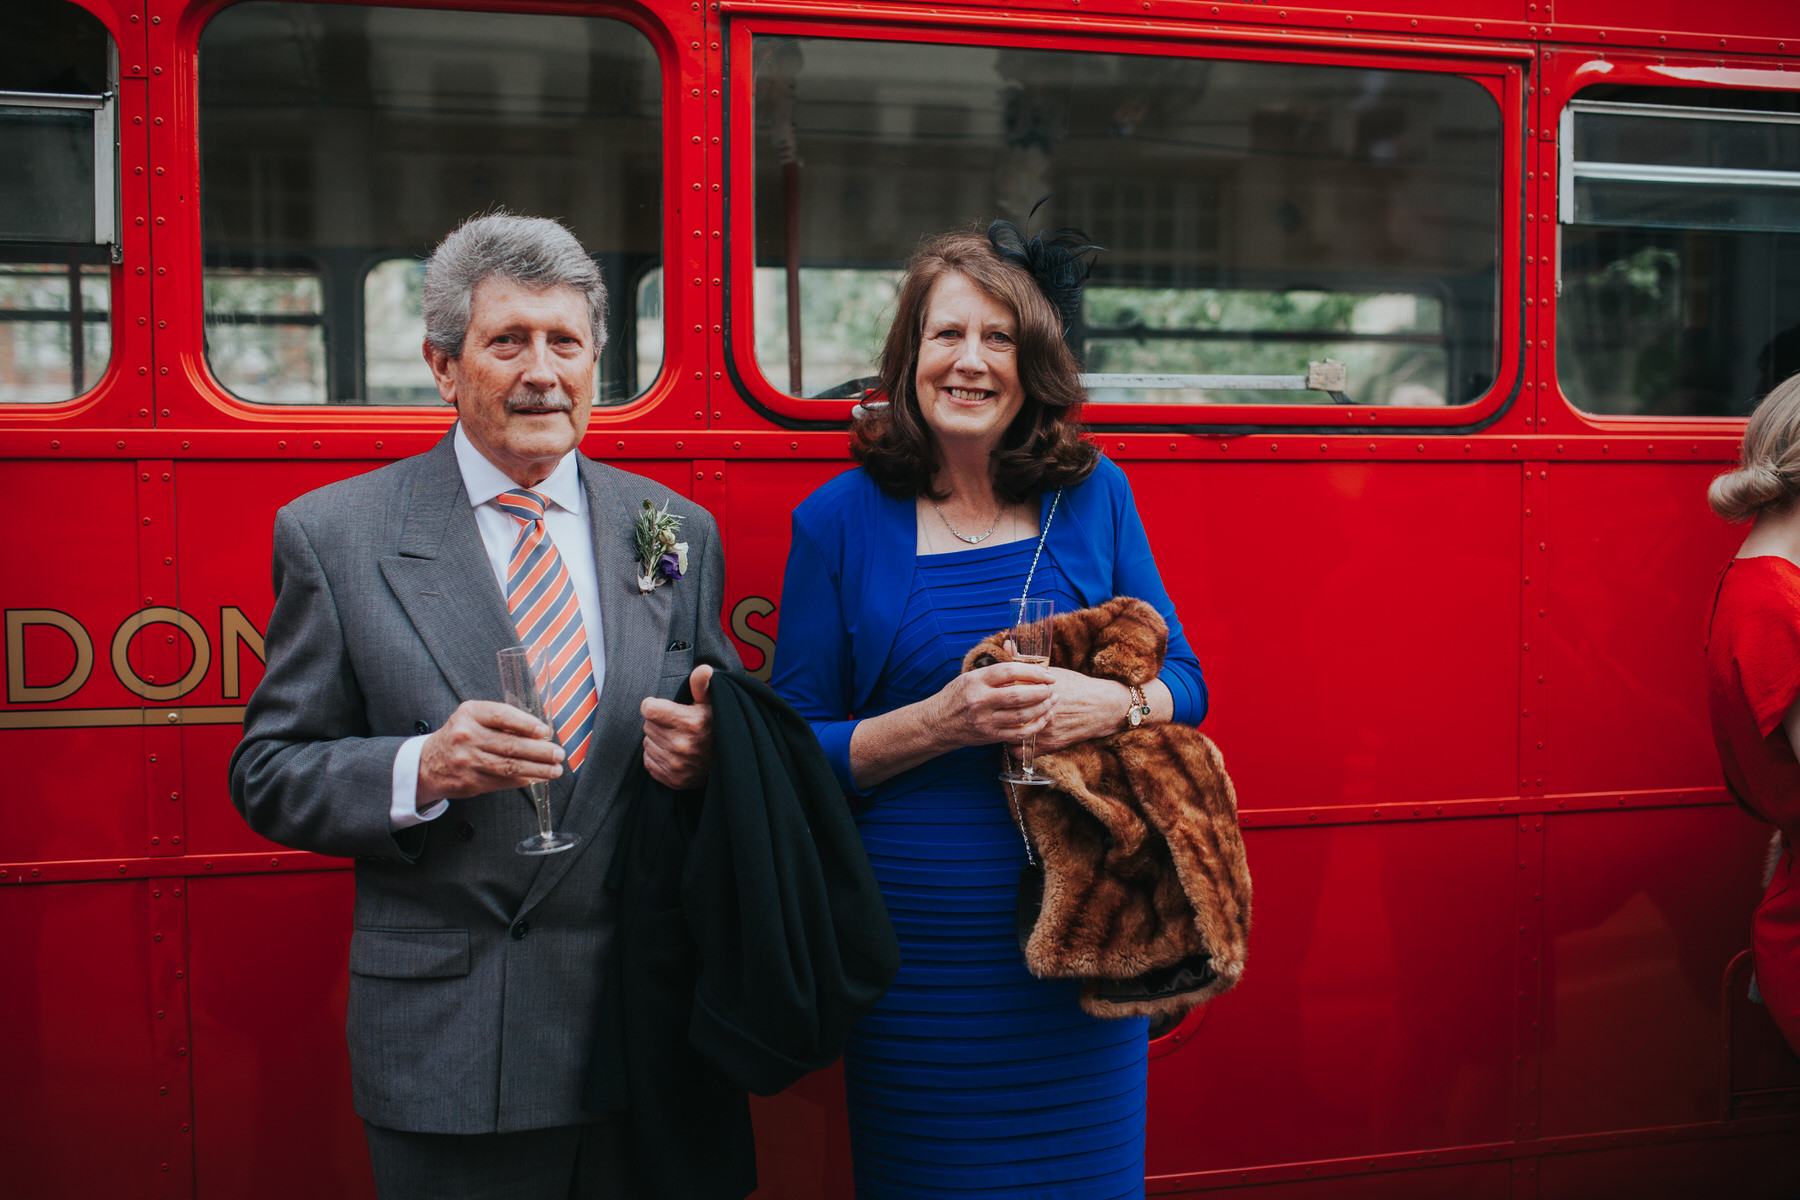 MS-Londesborough-Pub-wedding-Hackney-alternative-photographer-135-guests-drinking-bubbly-red-london-wedding-bus.jpg